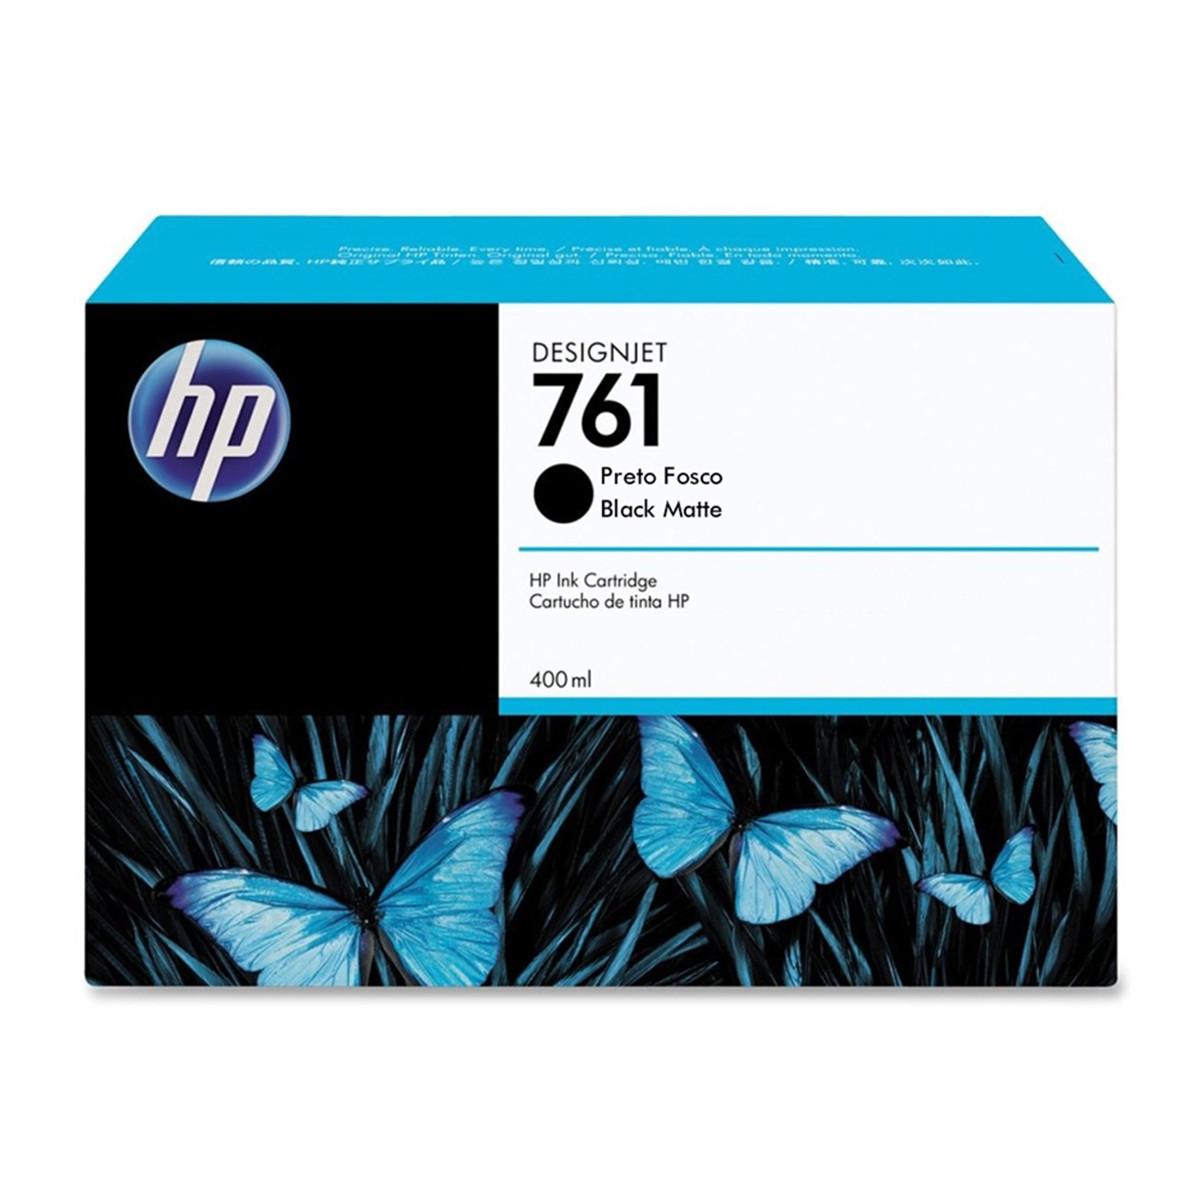 Cartucho de Tinta HP 761 Preto Fosco CM991A | T7100 T7200 | Original 400ml